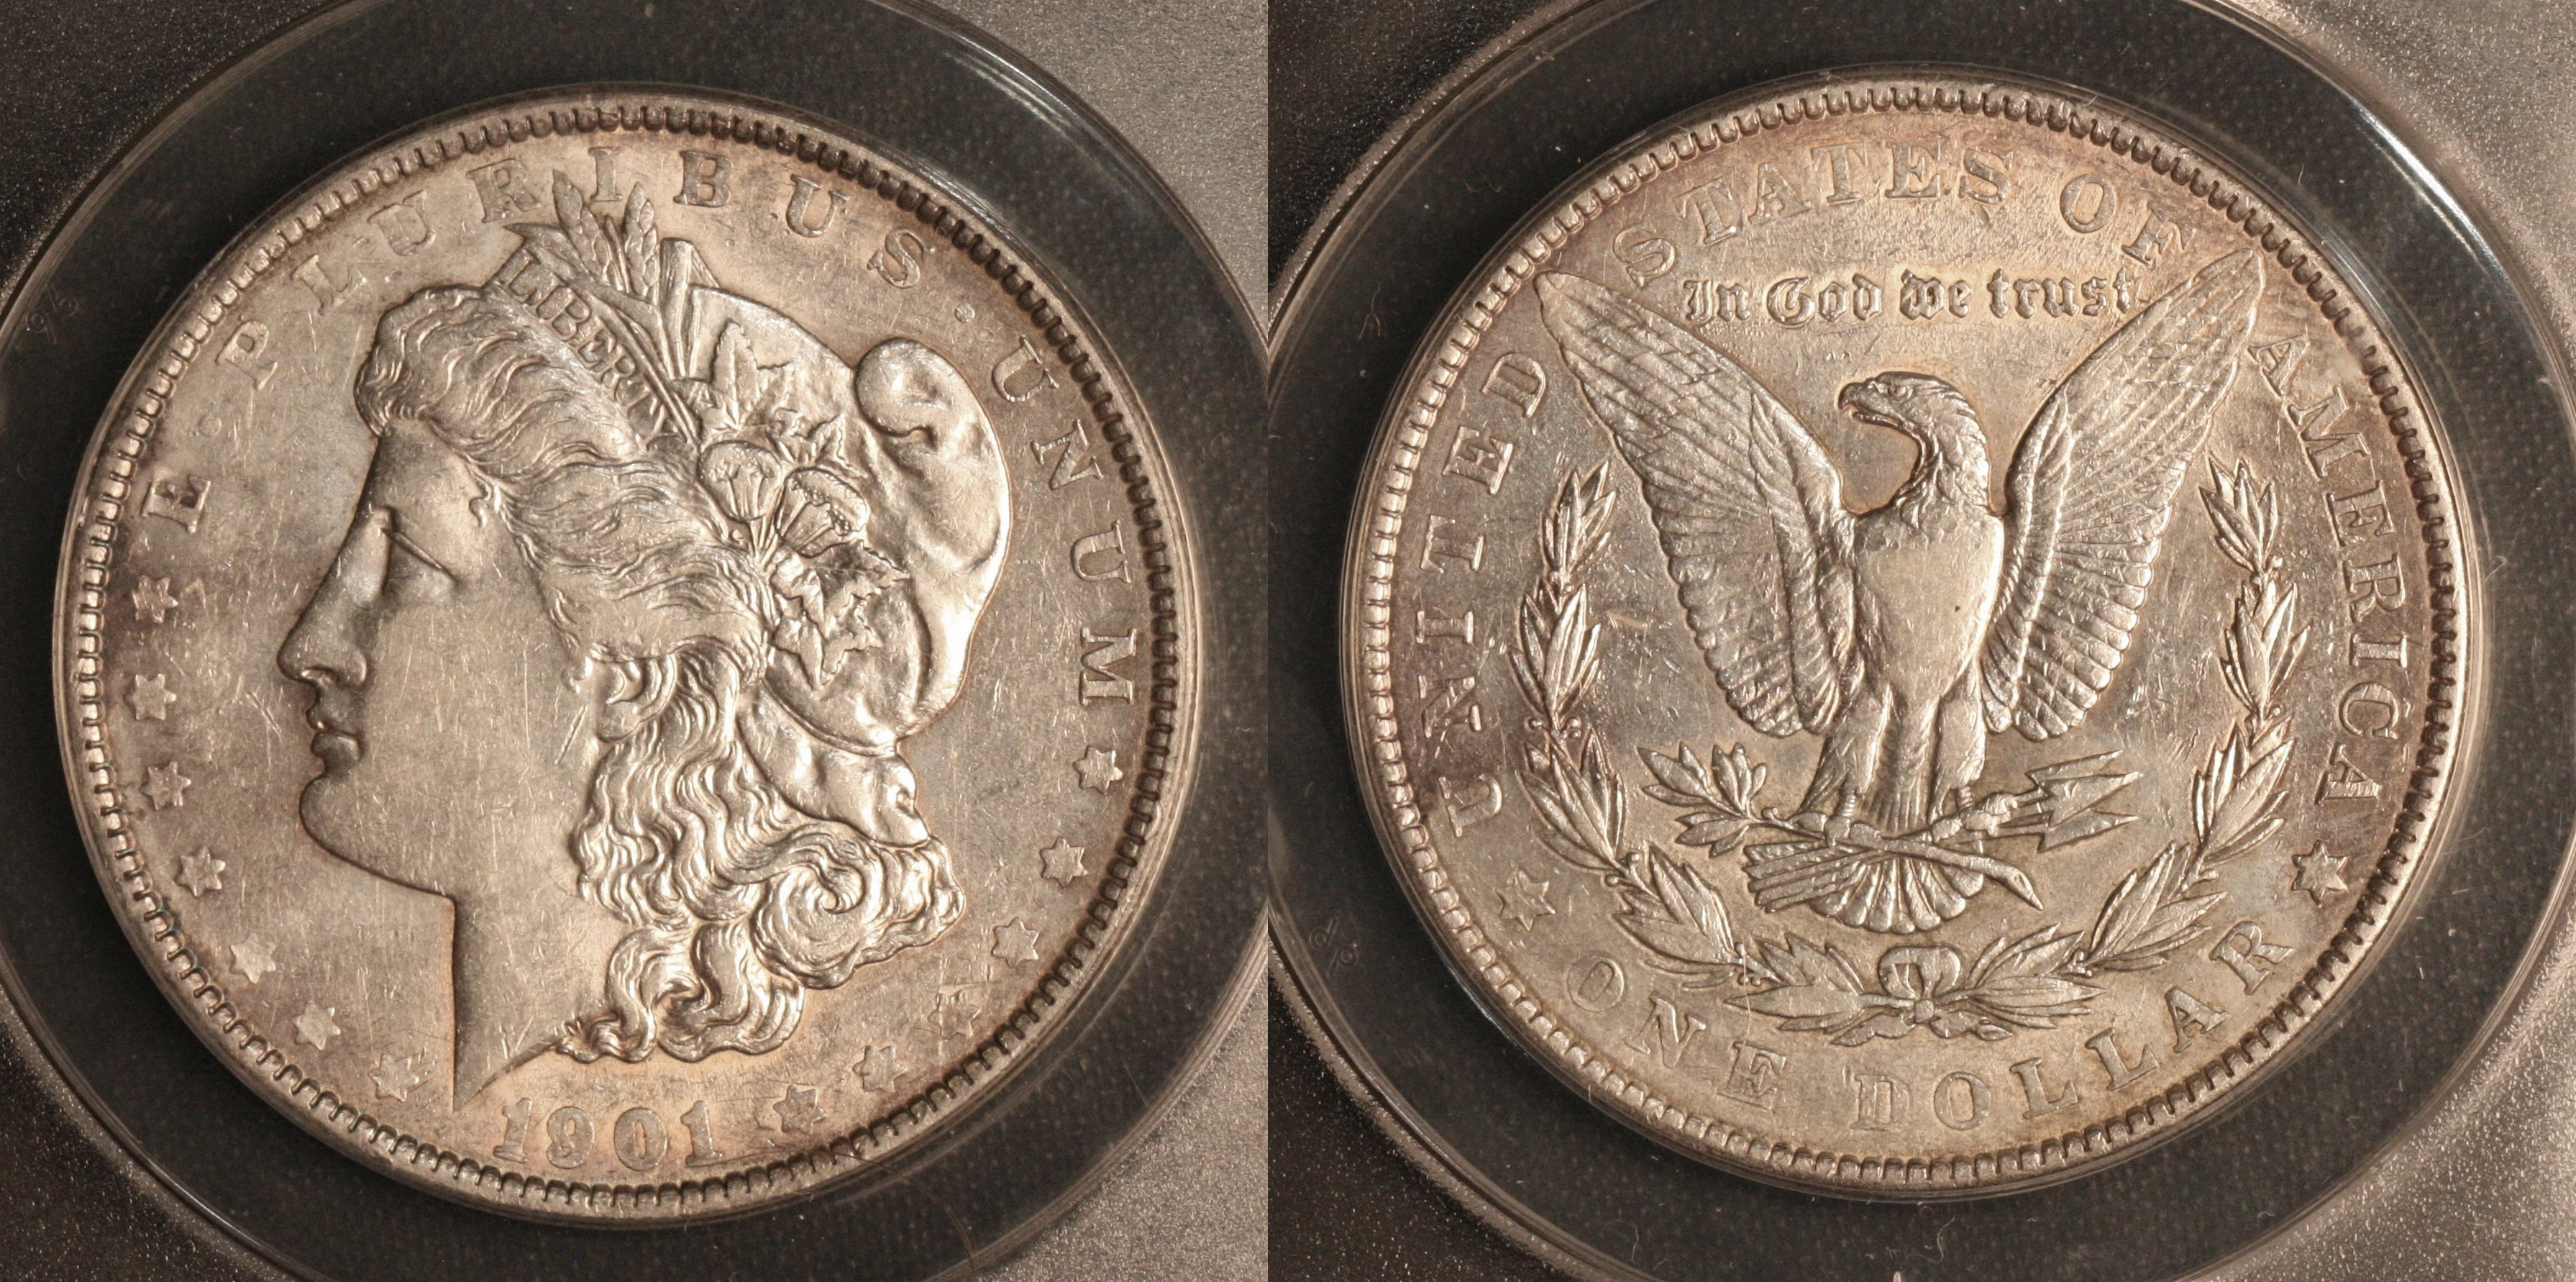 1901 Morgan Silver Dollar ANACS AU-50 #a camera